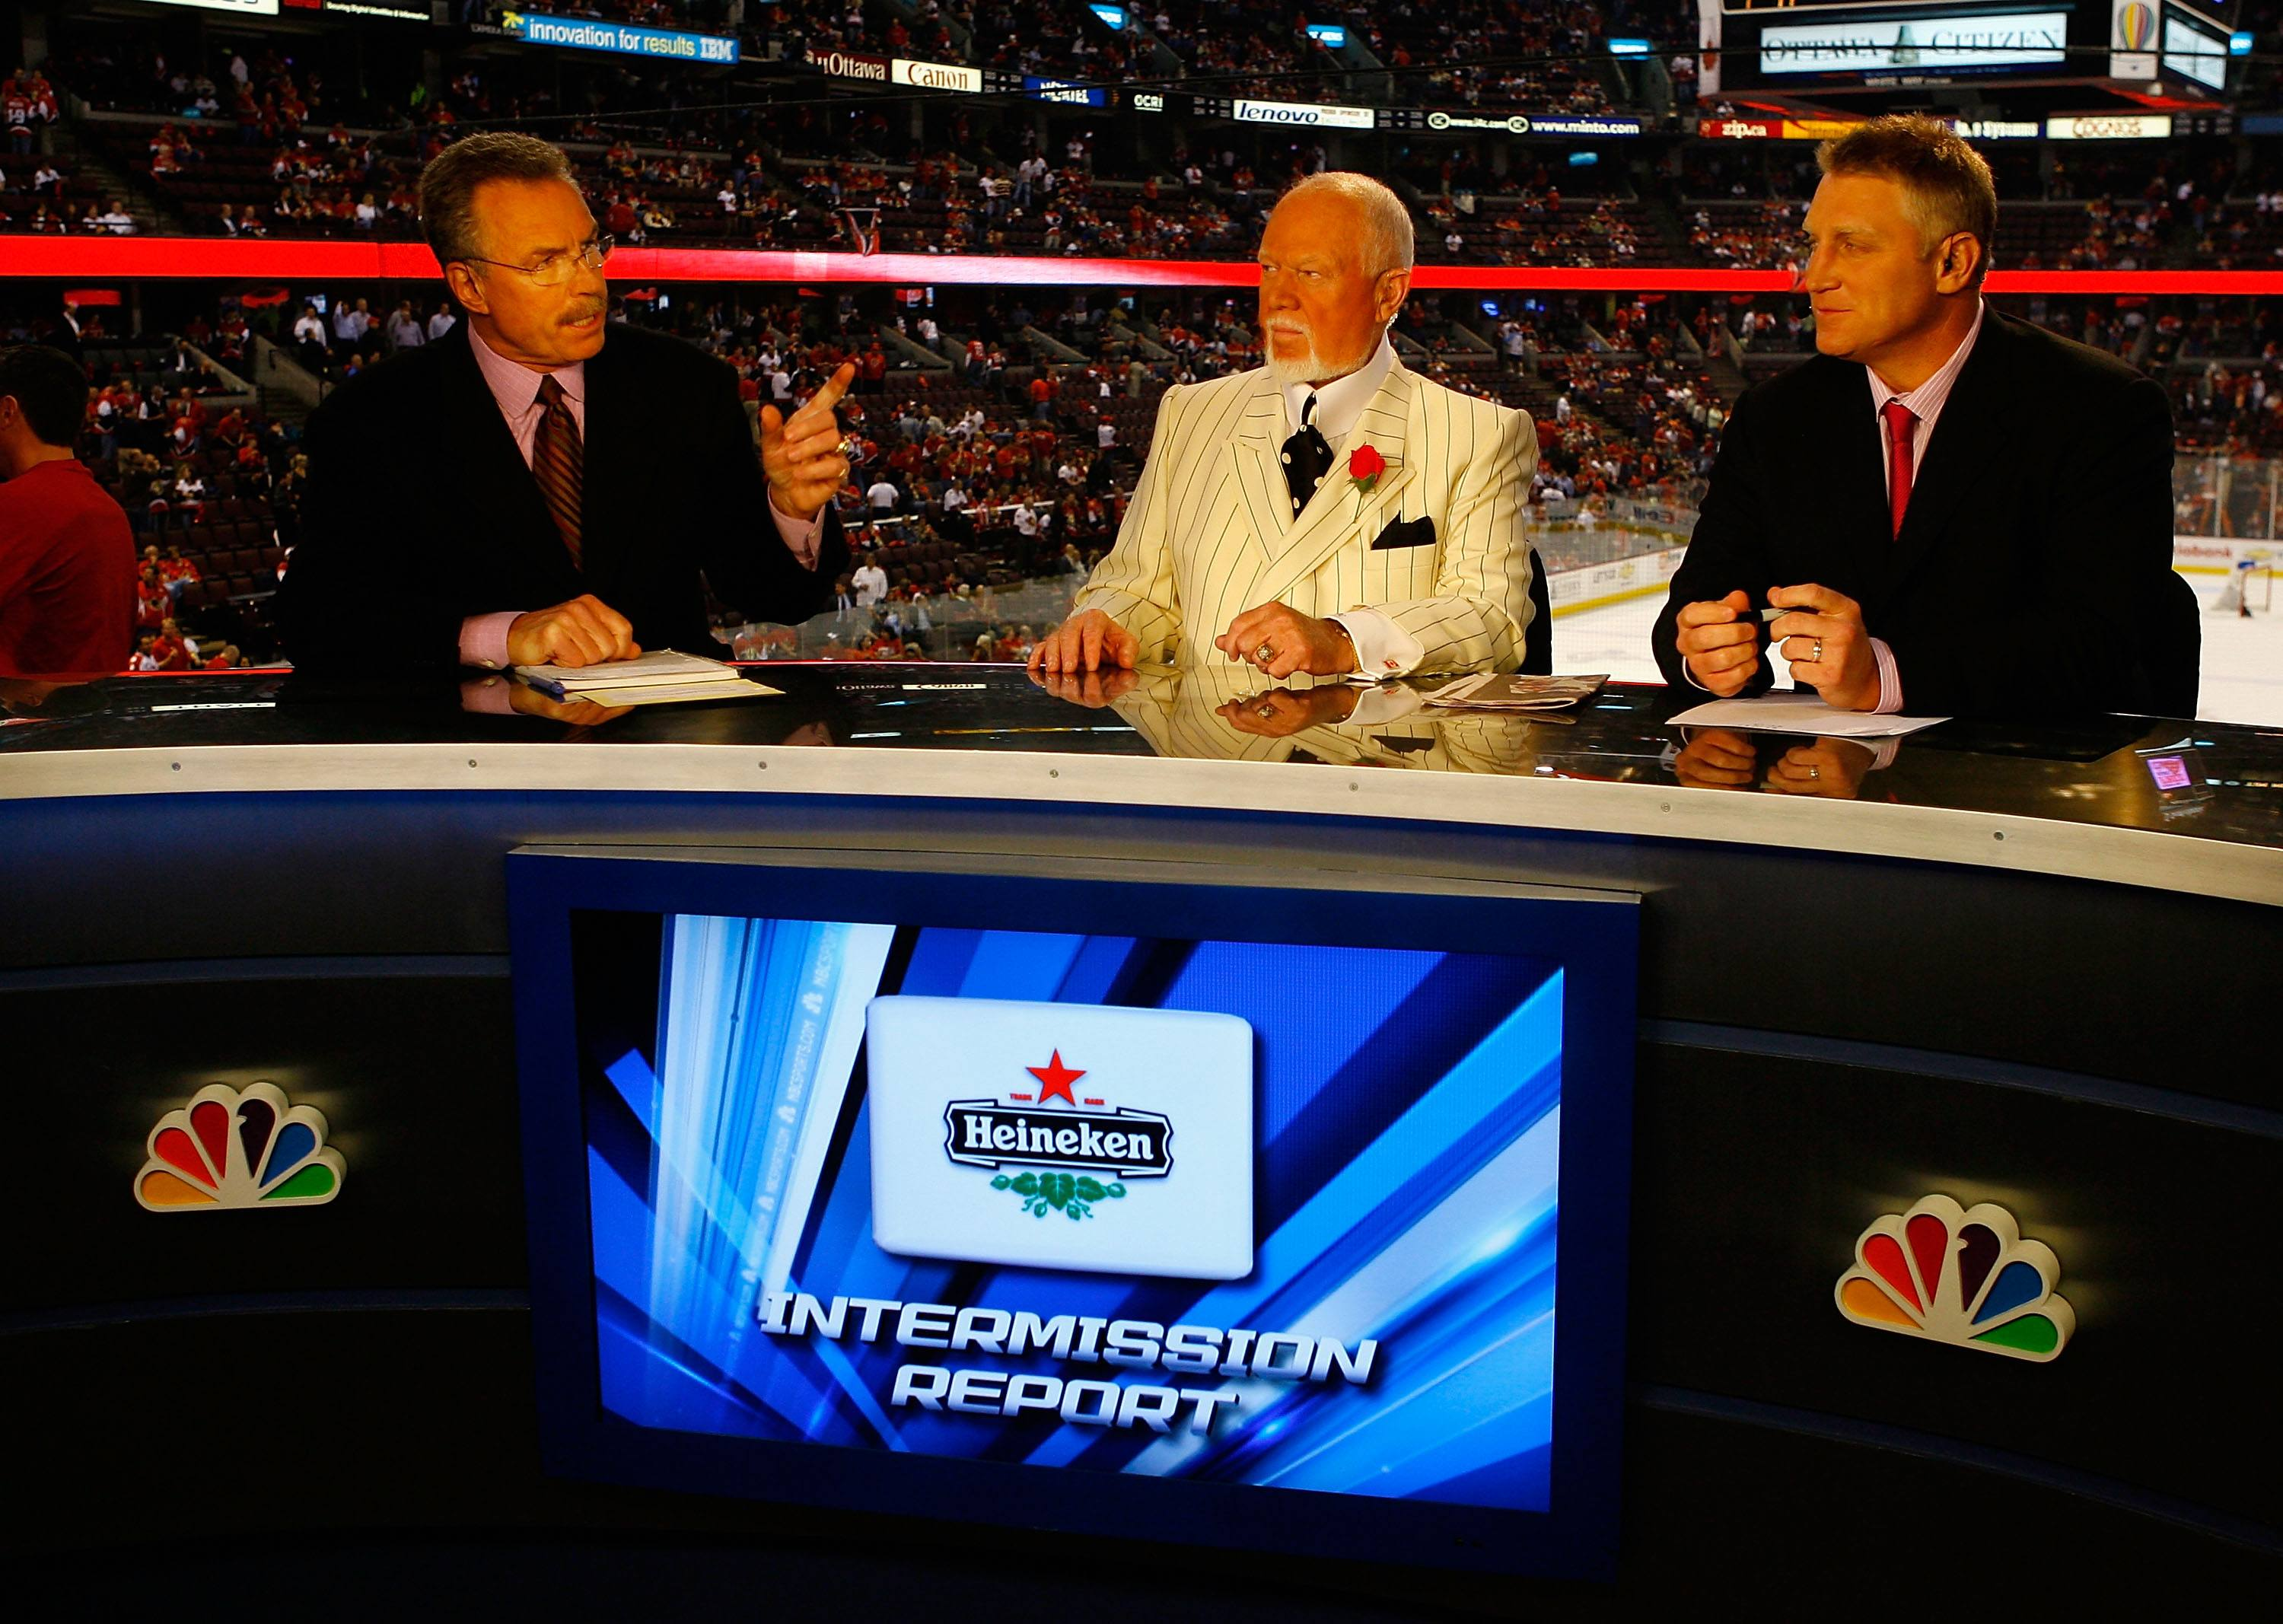 Broadcasters, (L-R) Bill Clement, Don Cherry and Brett Hull speak during the intermission show of an NHL game